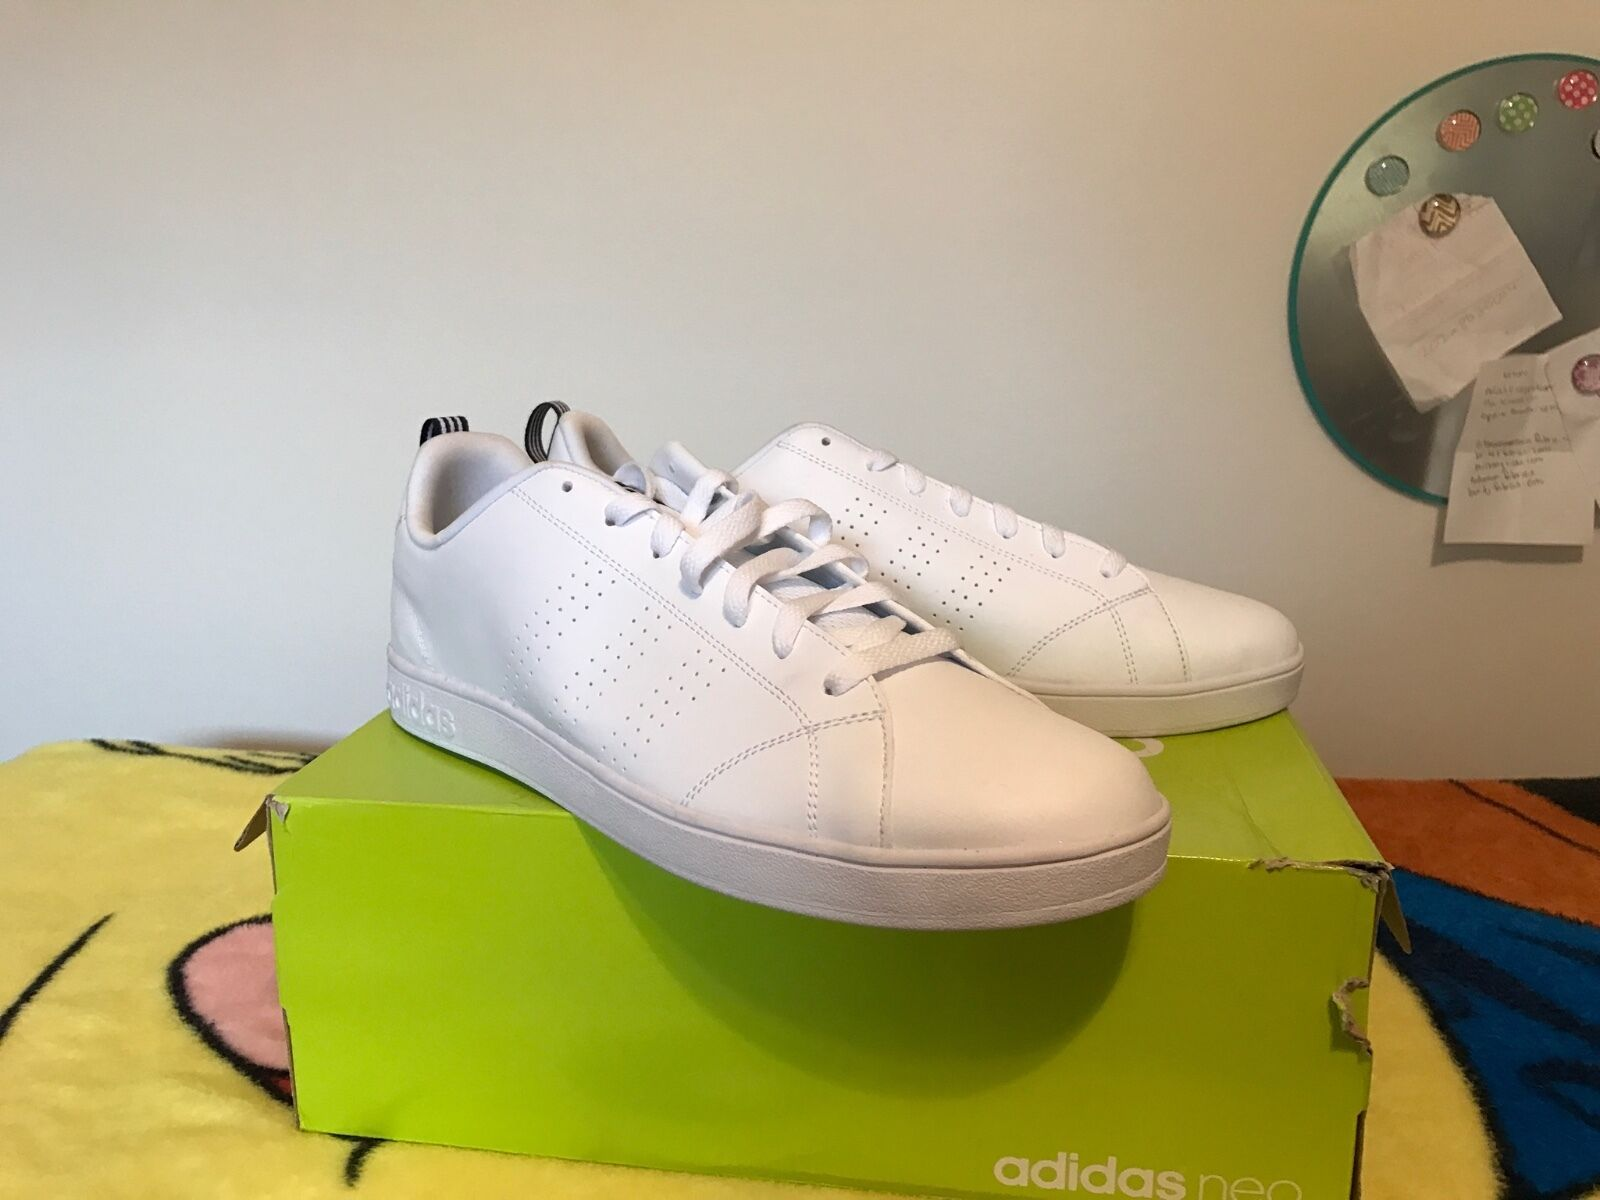 New in Box Adidas Men's NEO Advantage Clean VS Sneakers White Navy Size 13